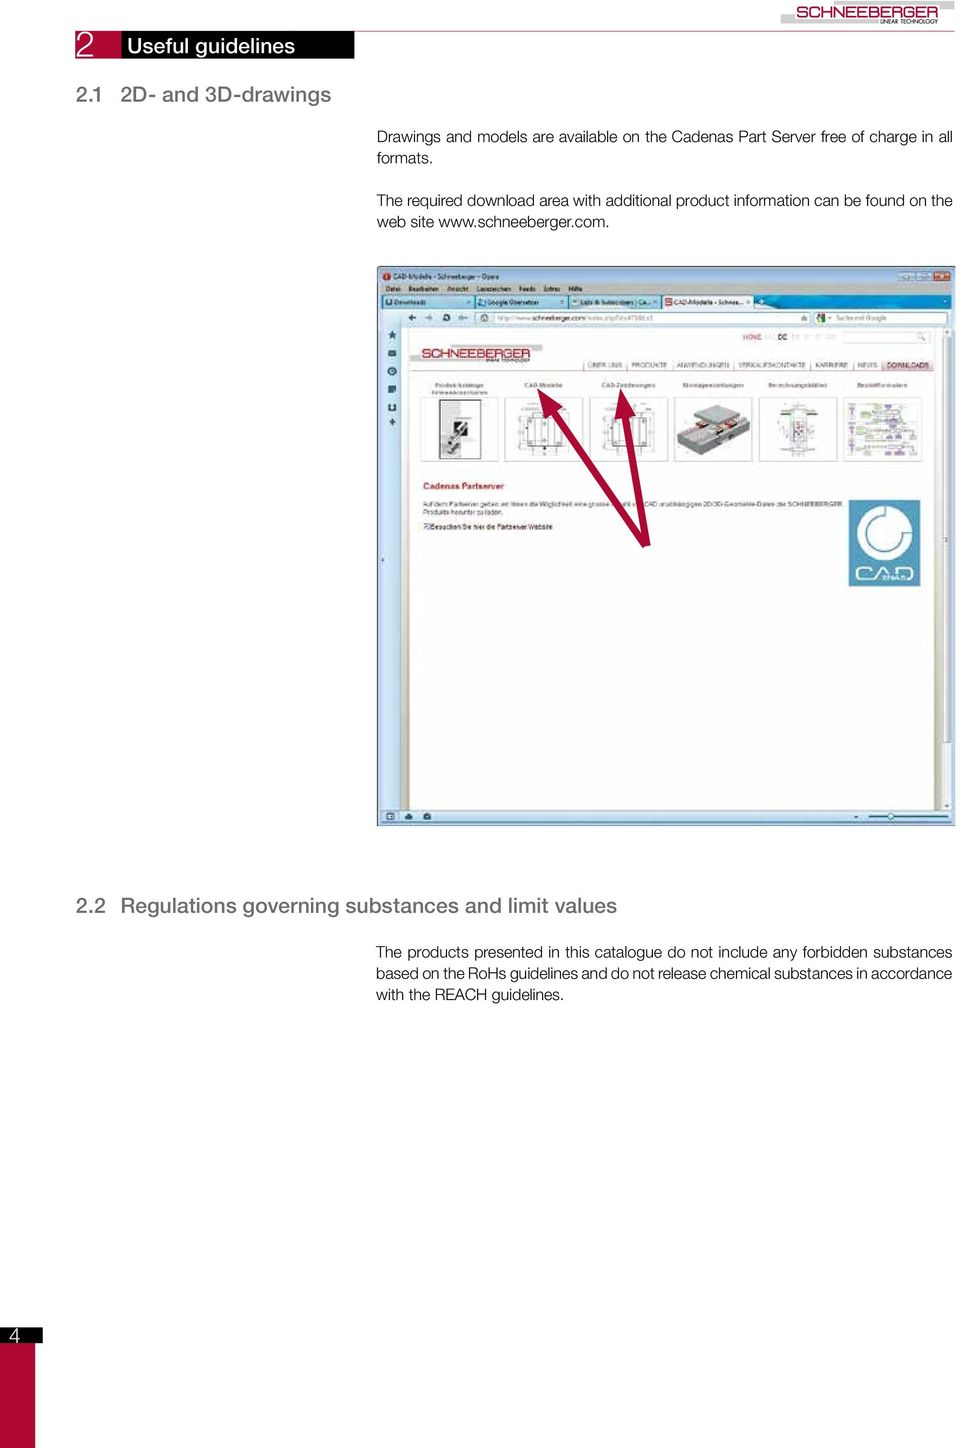 The required download area with additional product information can be found on the web site www.schneeberger.com. 2.